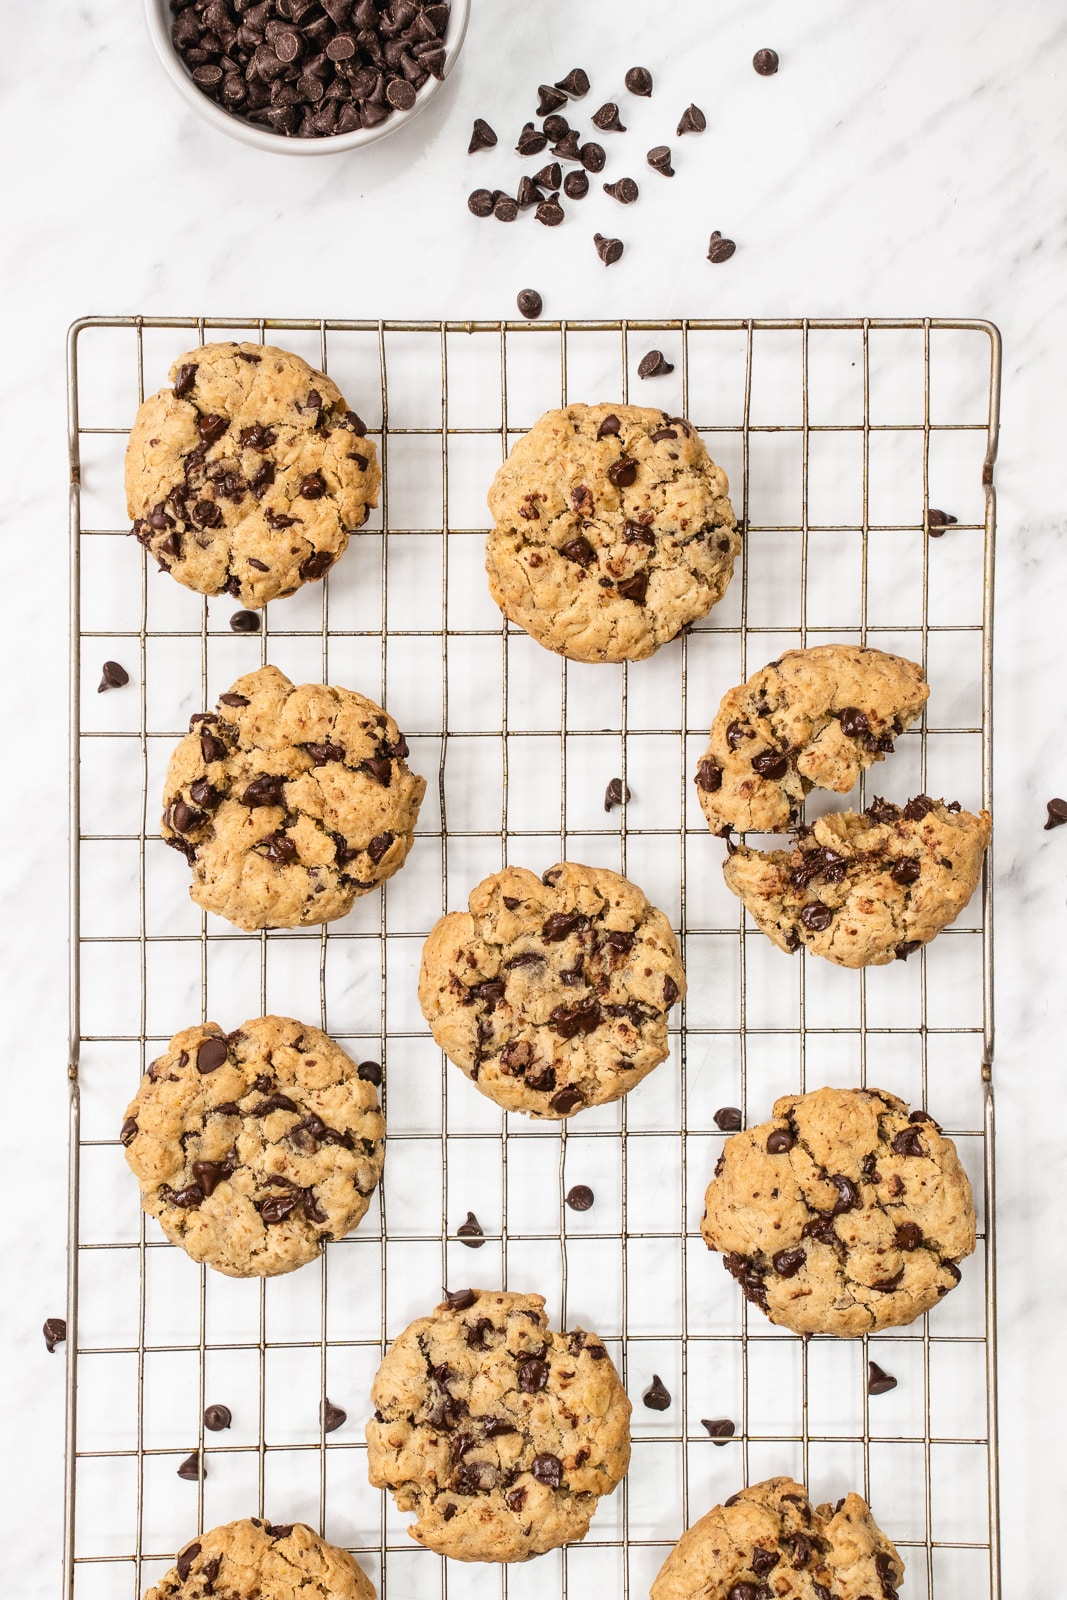 Chewy vegan oatmeal chocolate chip cookies cooling on a wire rack